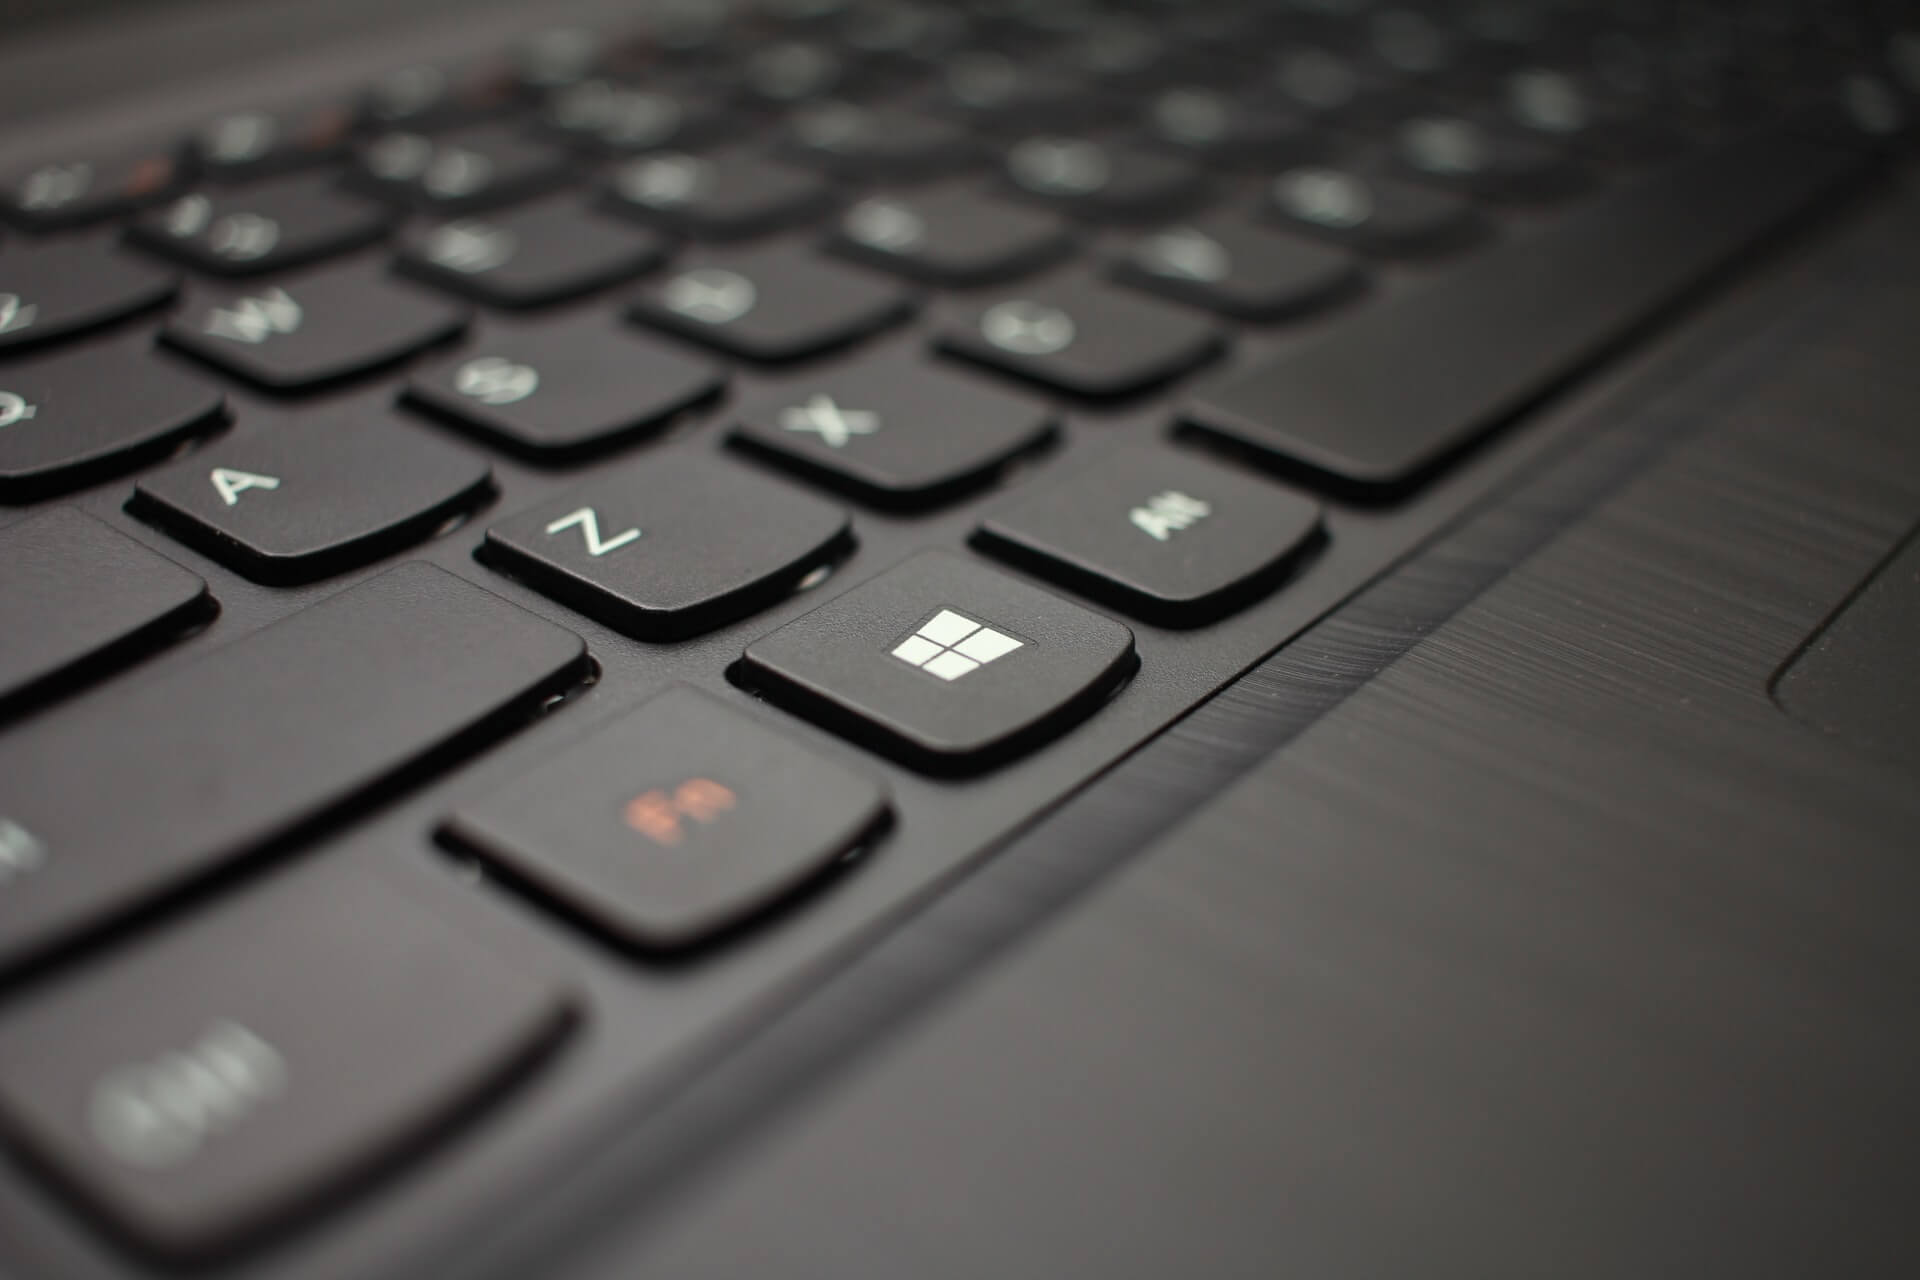 Clavier Windows - Photo by Hal Gatewood on Unsplash